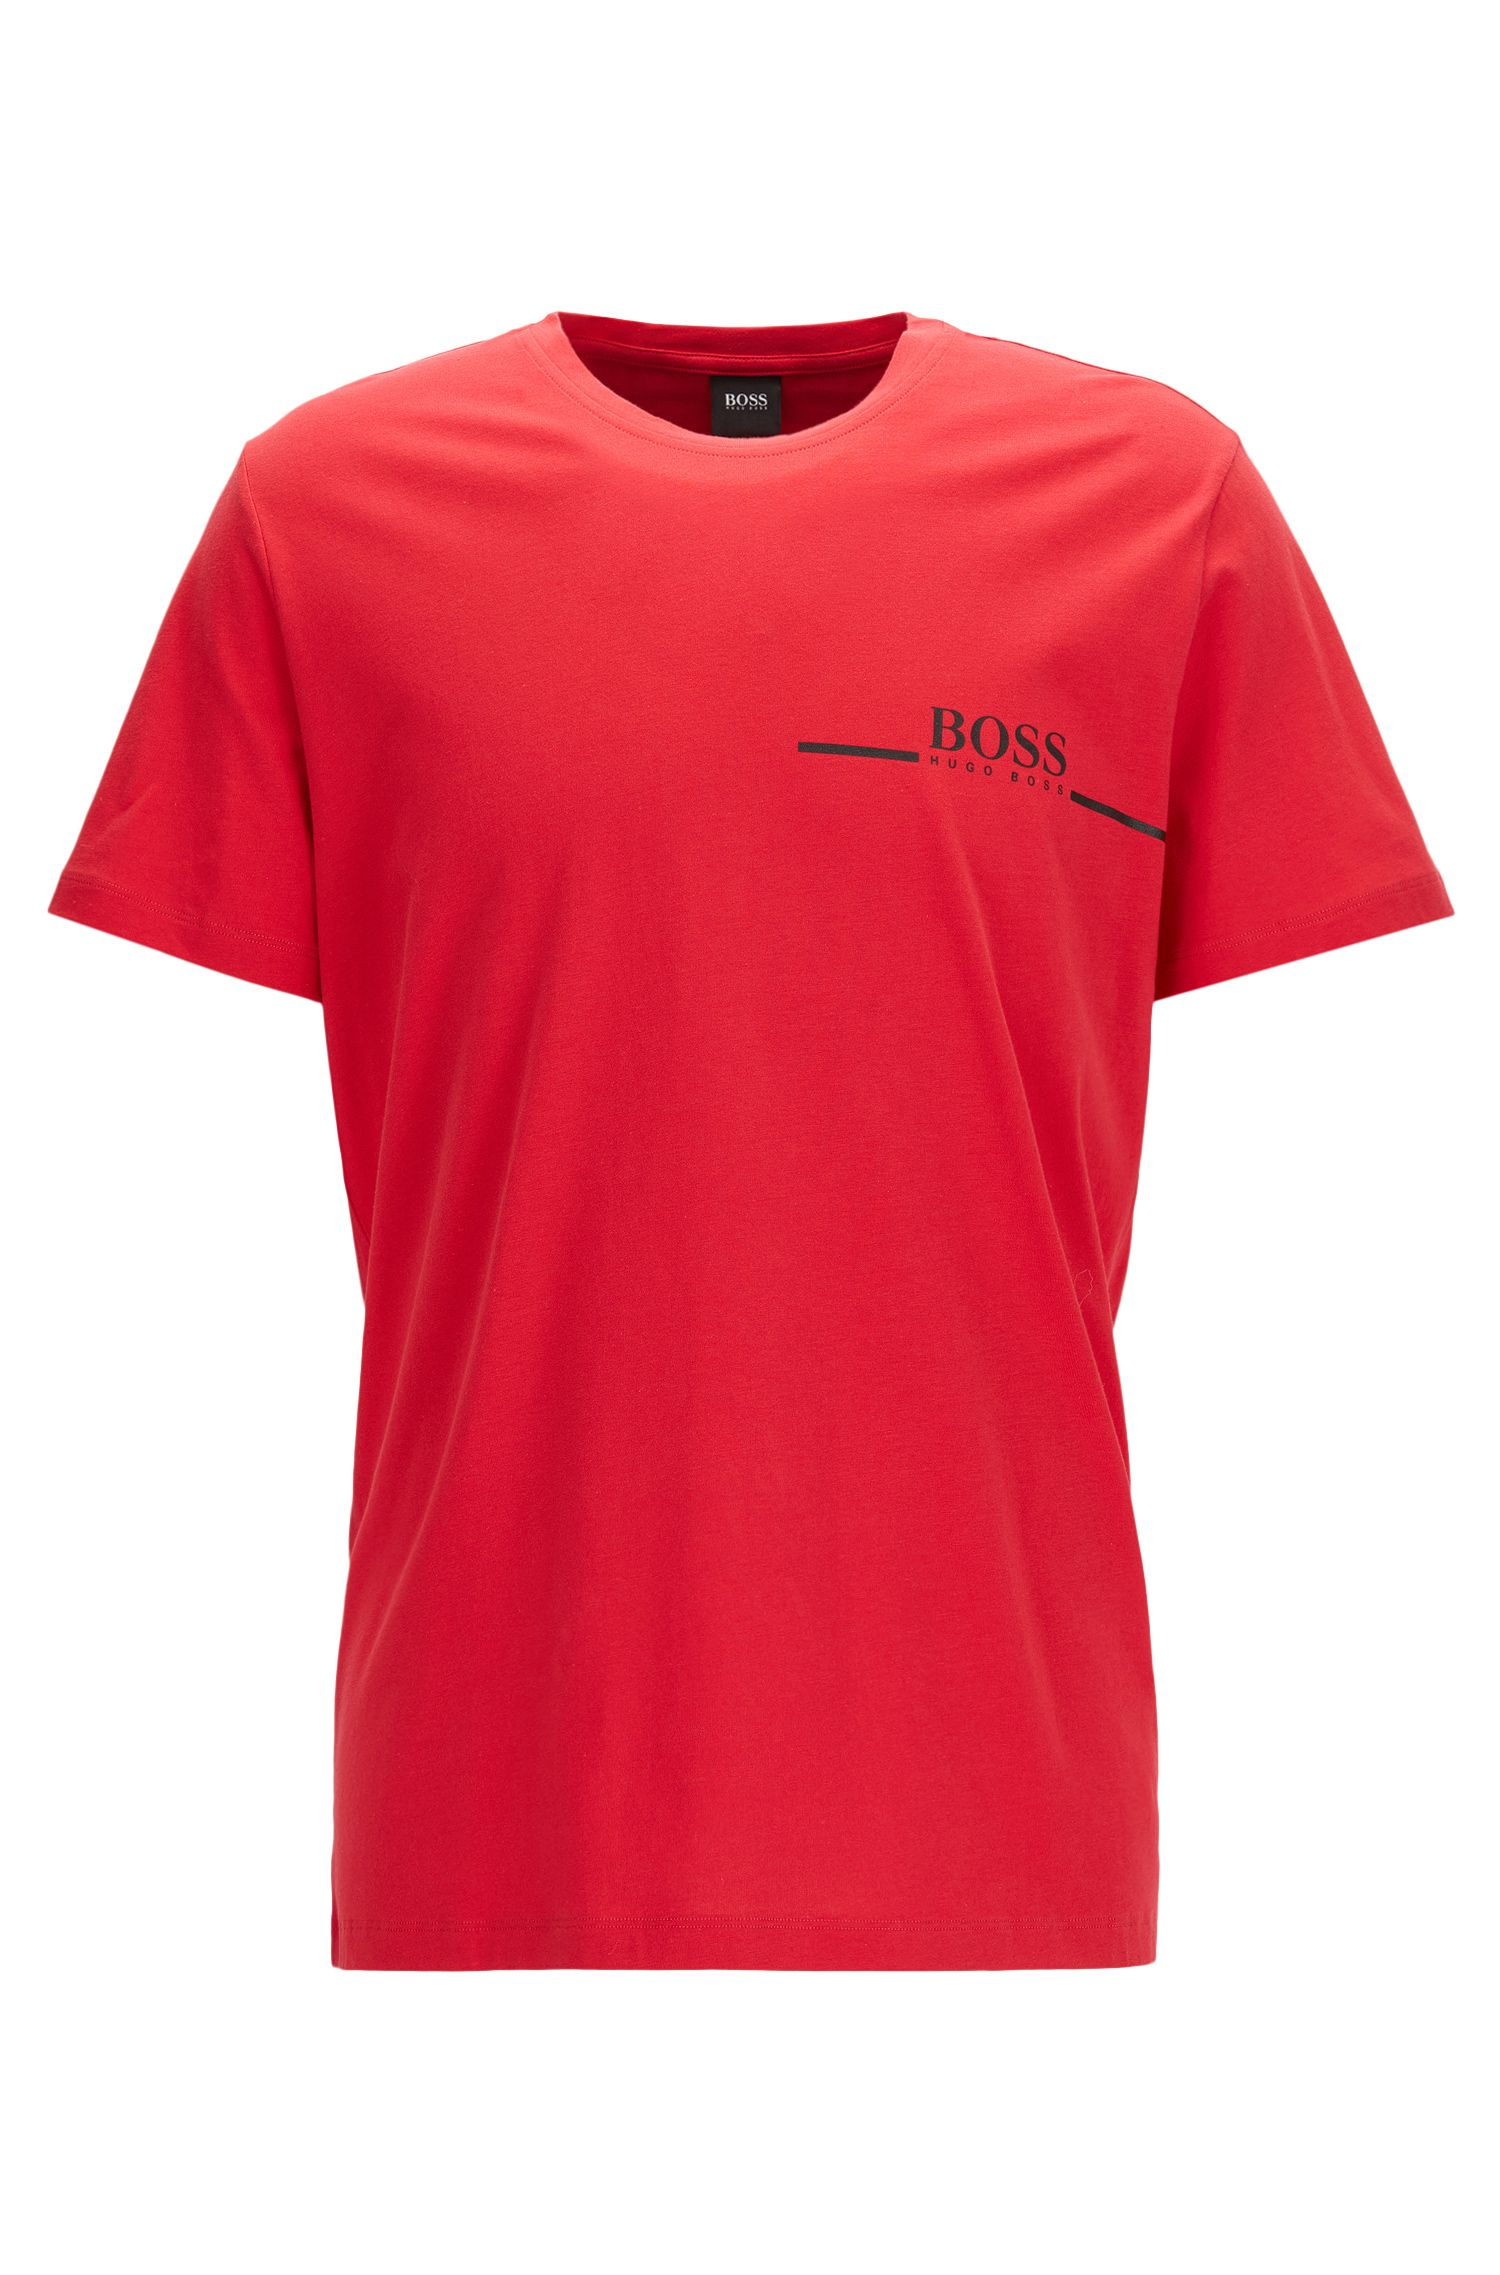 Relaxed-fit T-shirt in cotton jersey with logo print